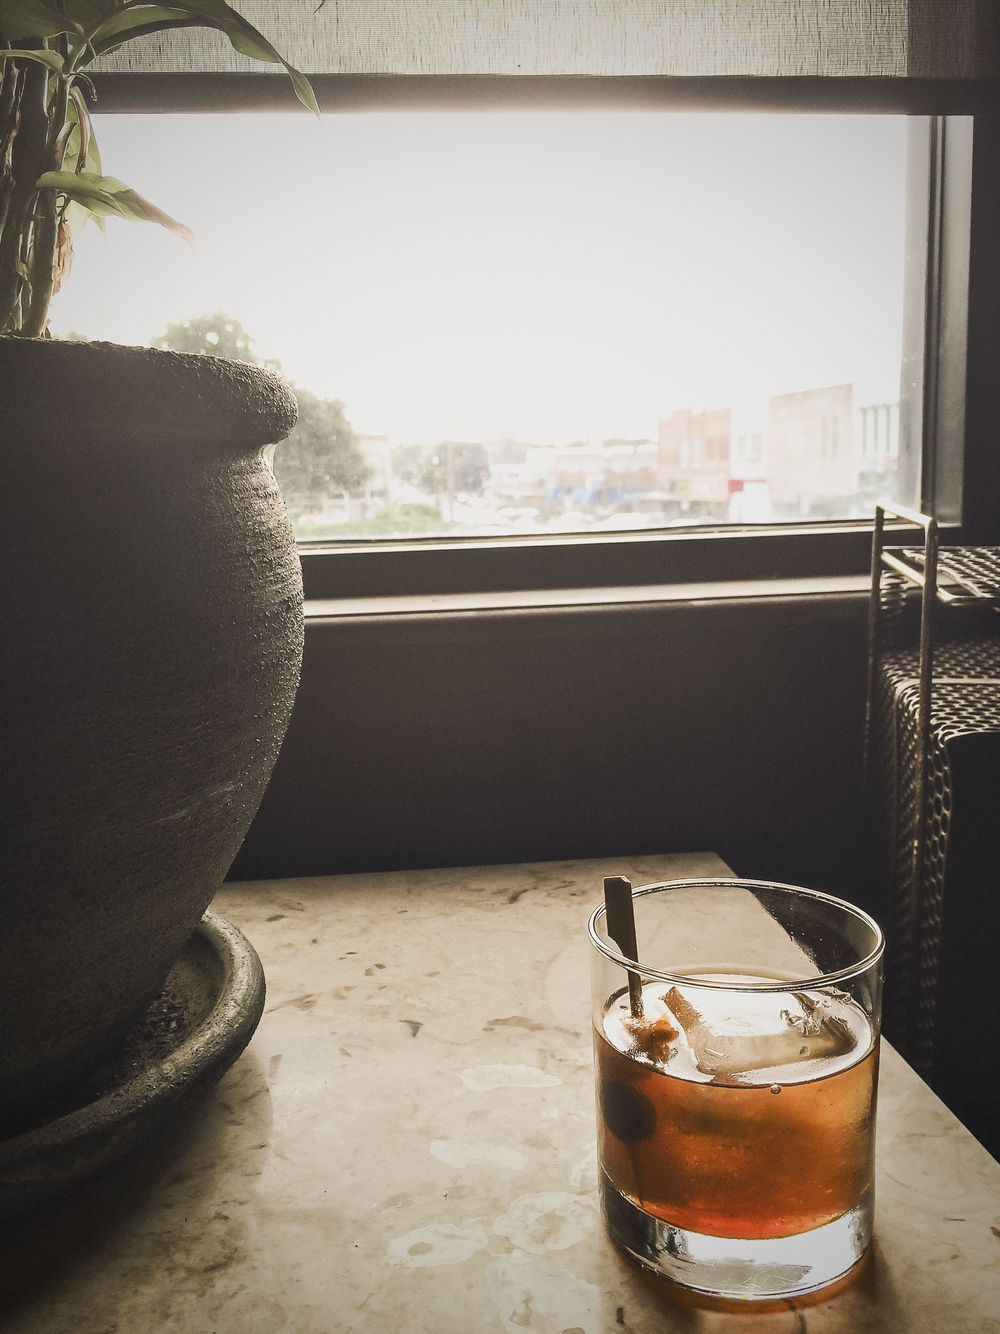 A little rain may move us inside, but when the inside gives you bourbon and a great view that ain't such a bad thing.